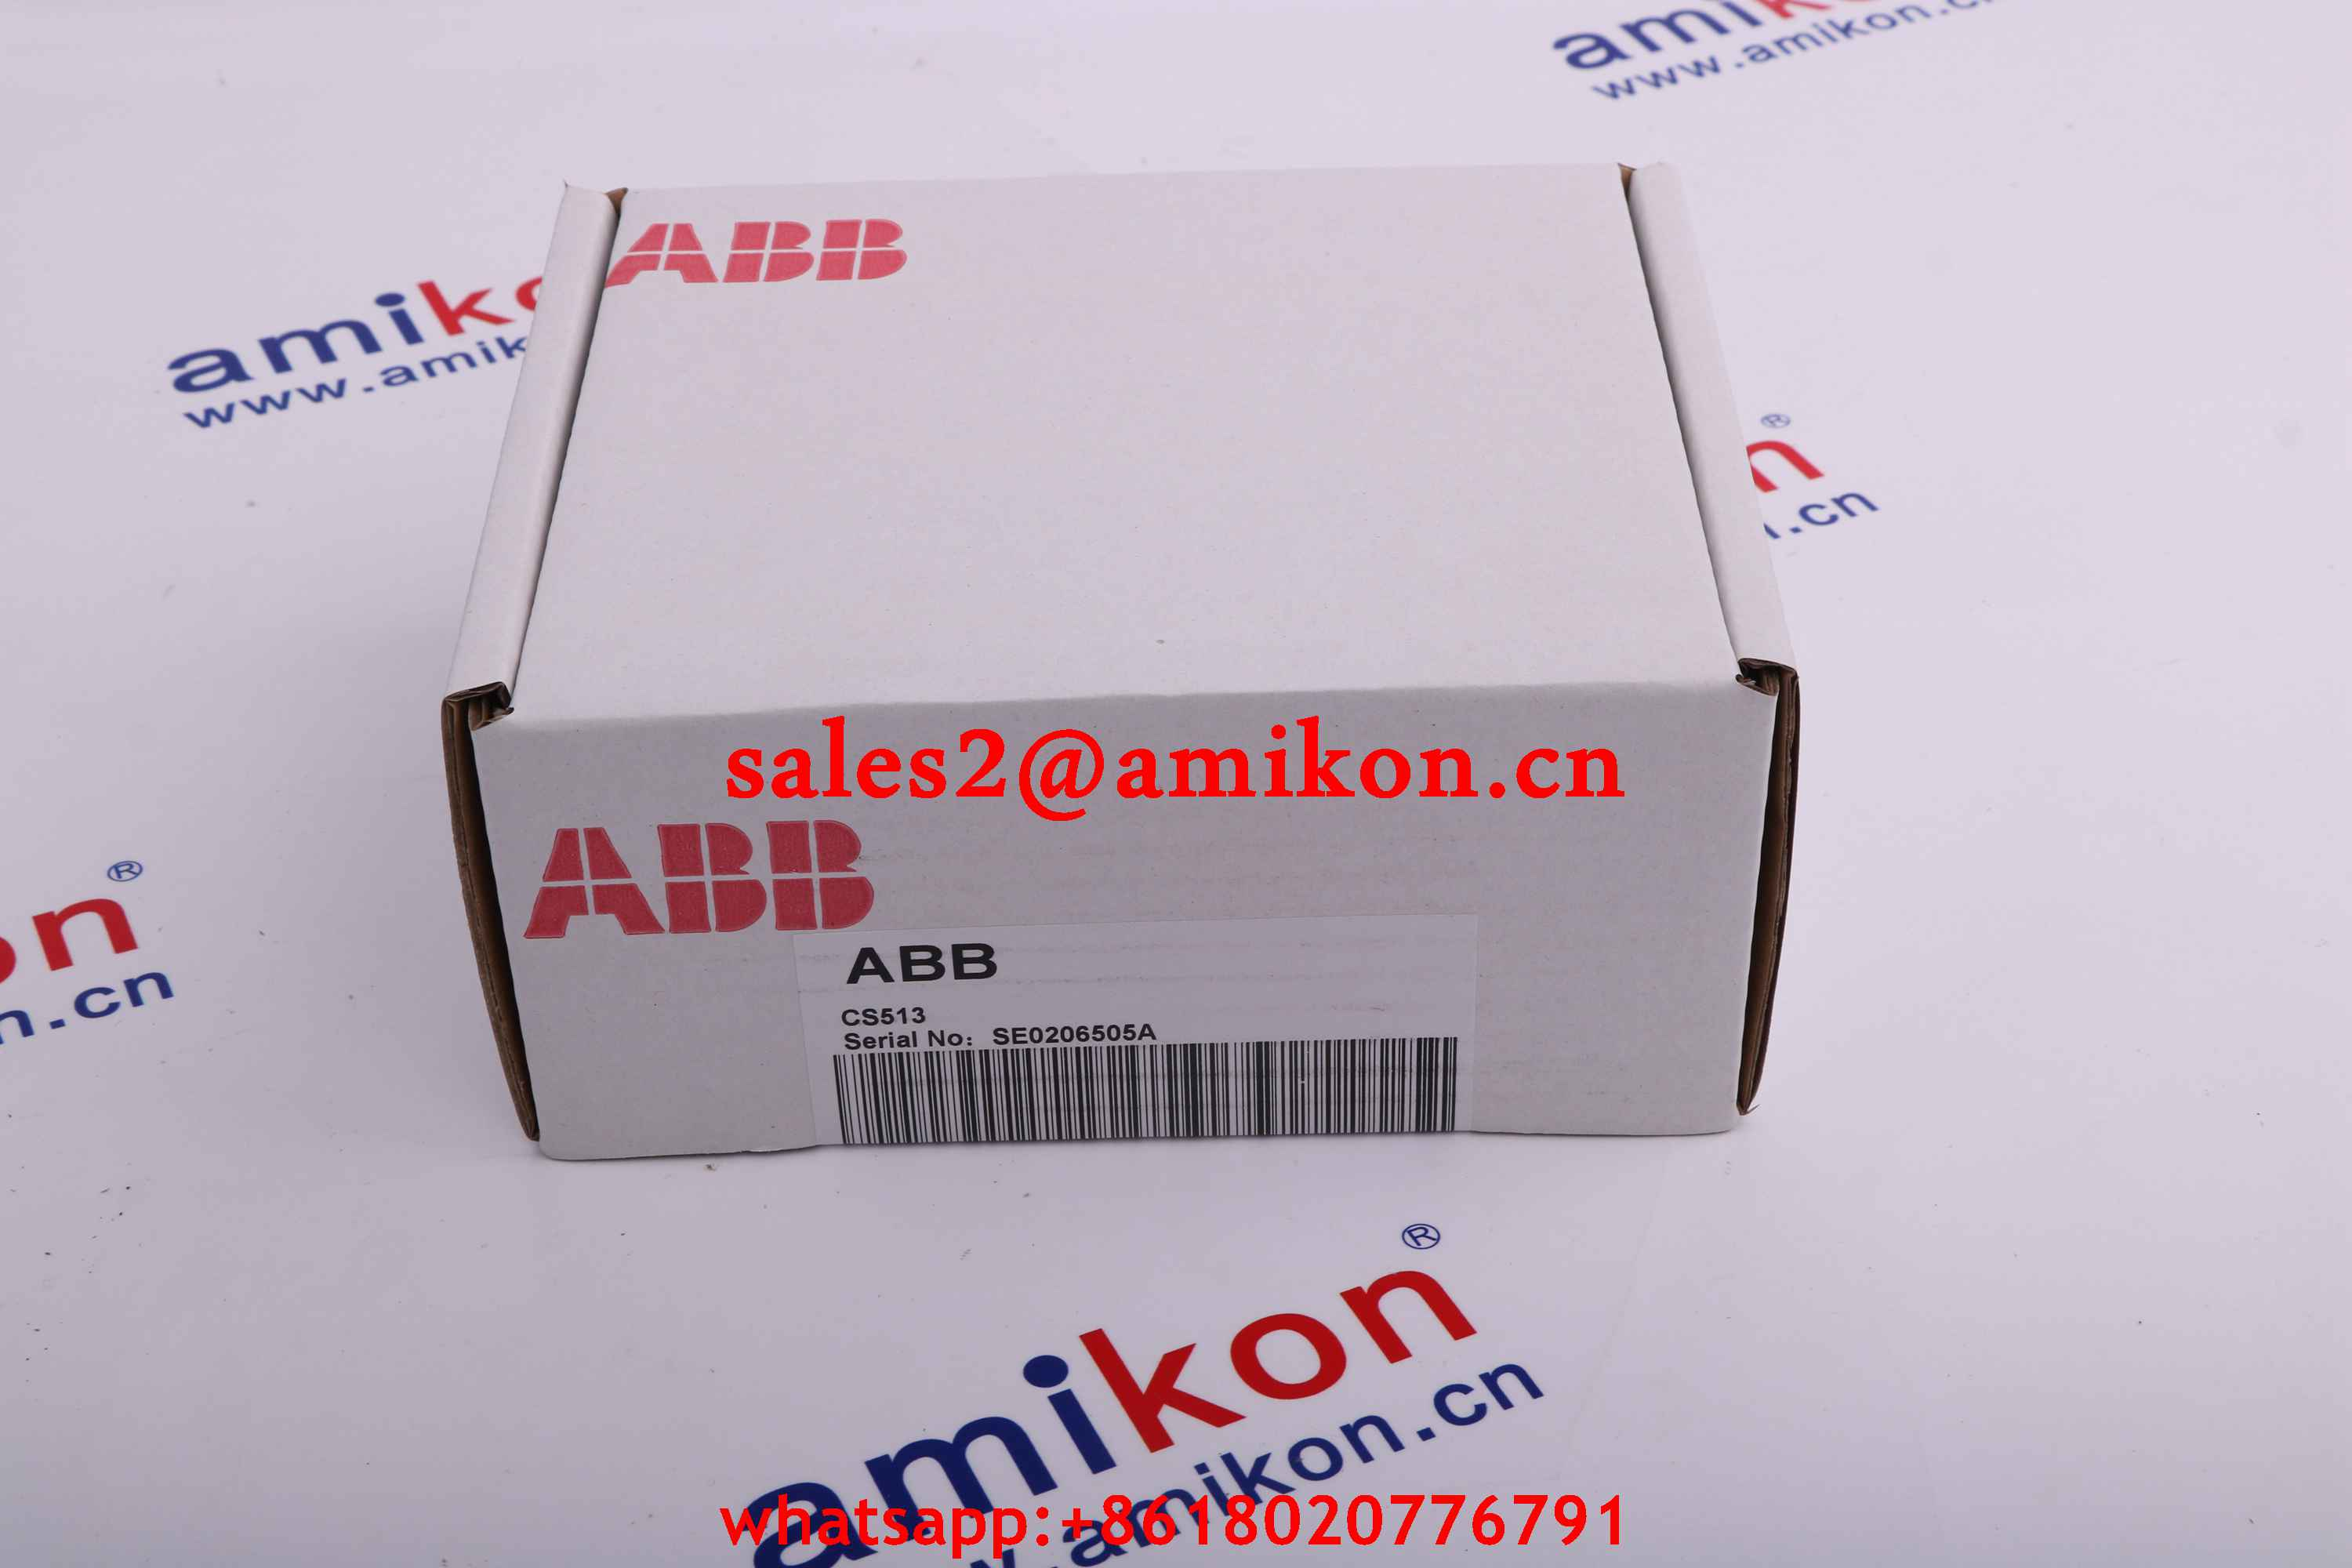 3HAB 2216-1 DSQC314B PowerUnit ABB | Robot spare parts | PLC DCS Parts T/T 100% New In stock